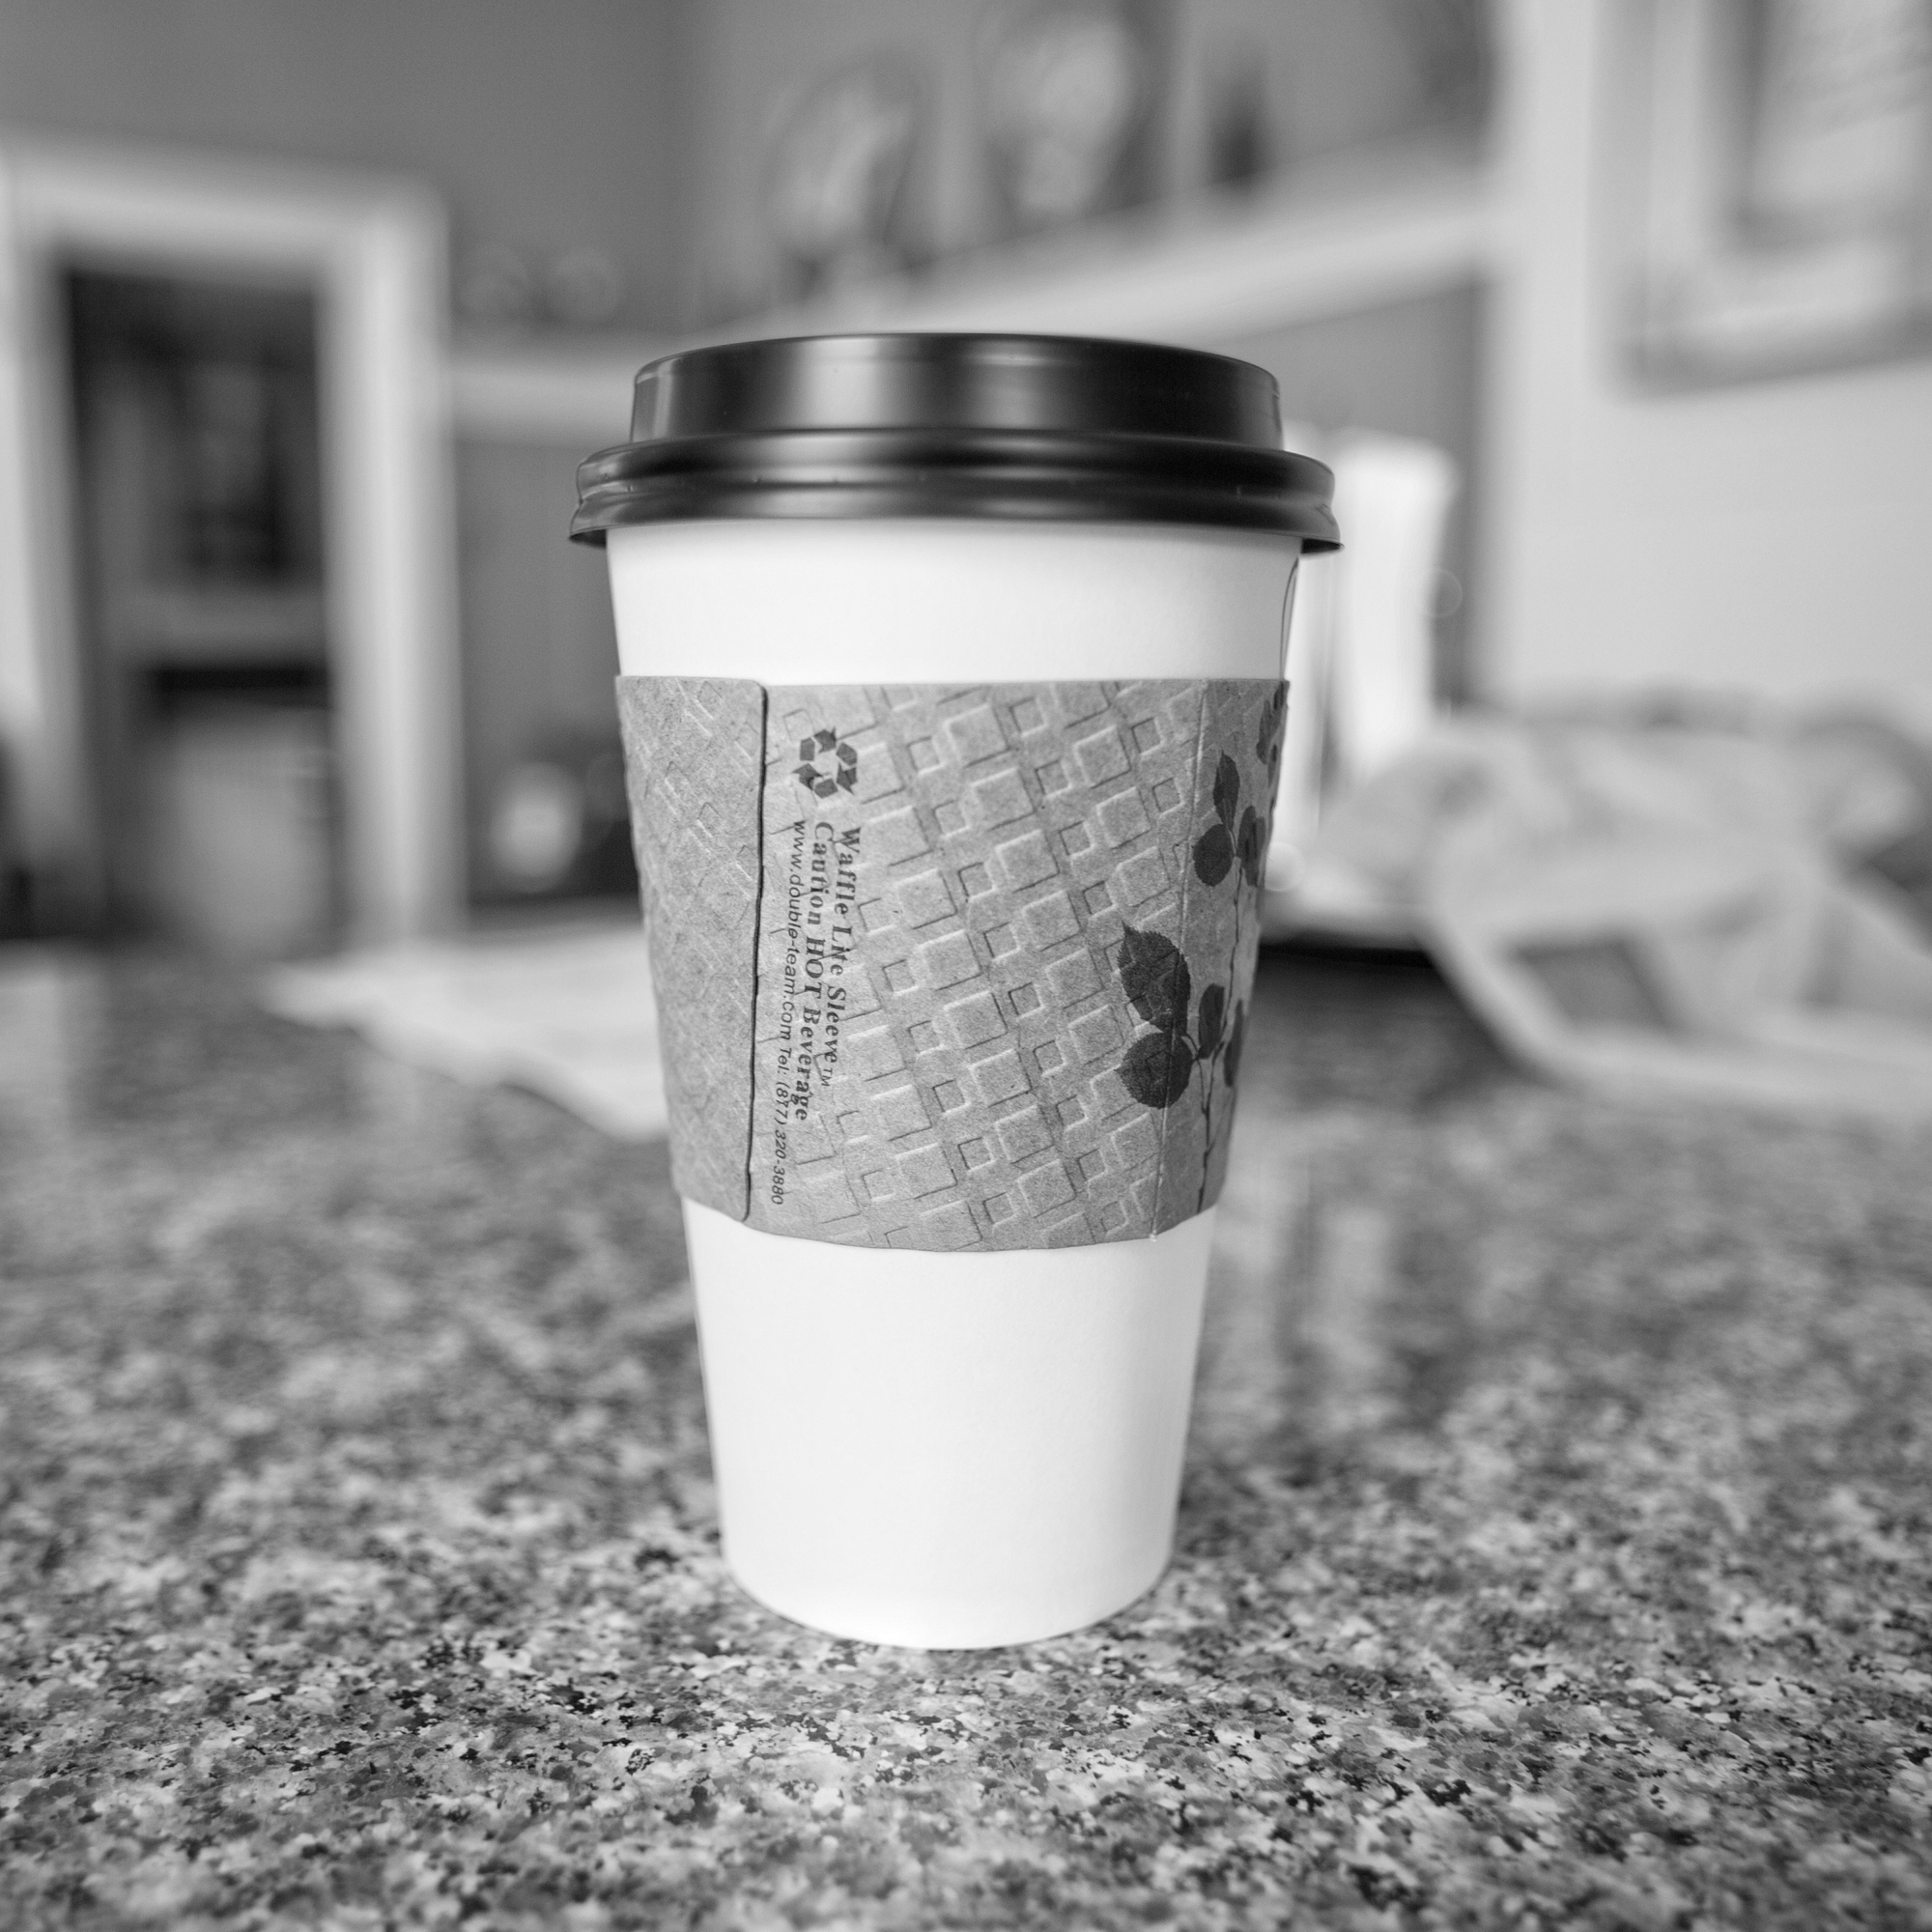 Coffee-cup-sleeve-01.jpeg